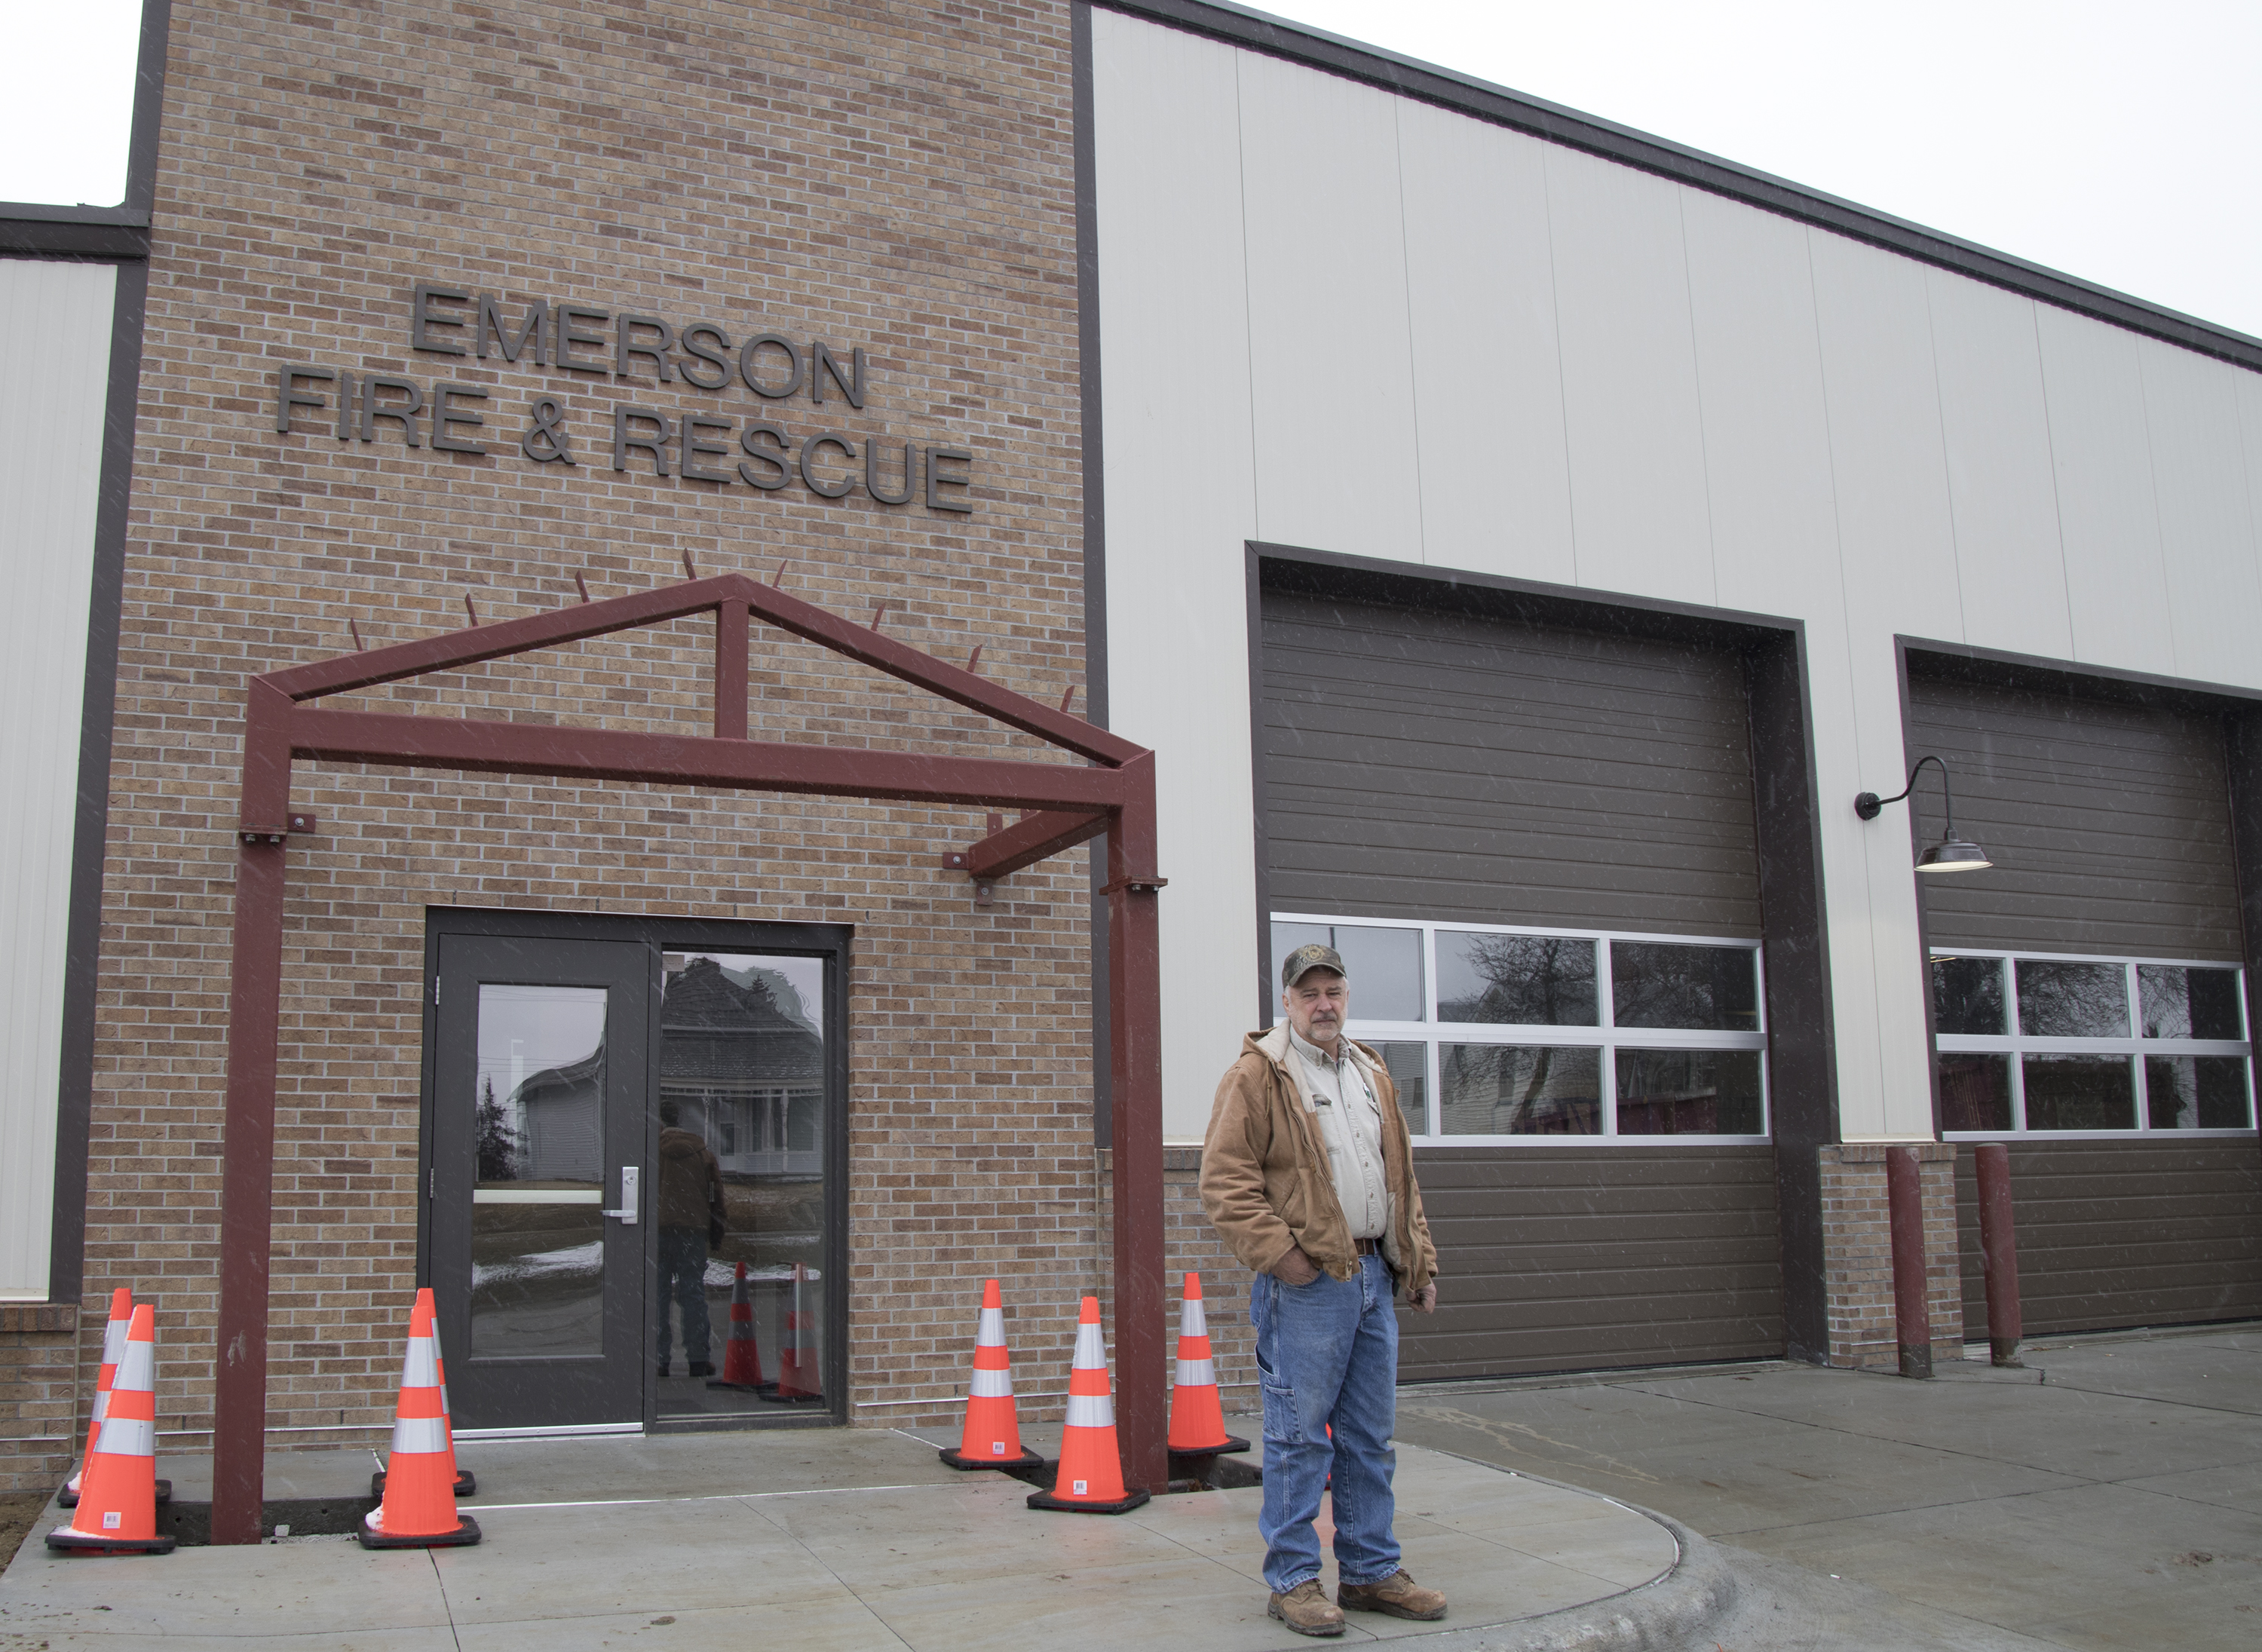 Village of Emerson gets new fire hall